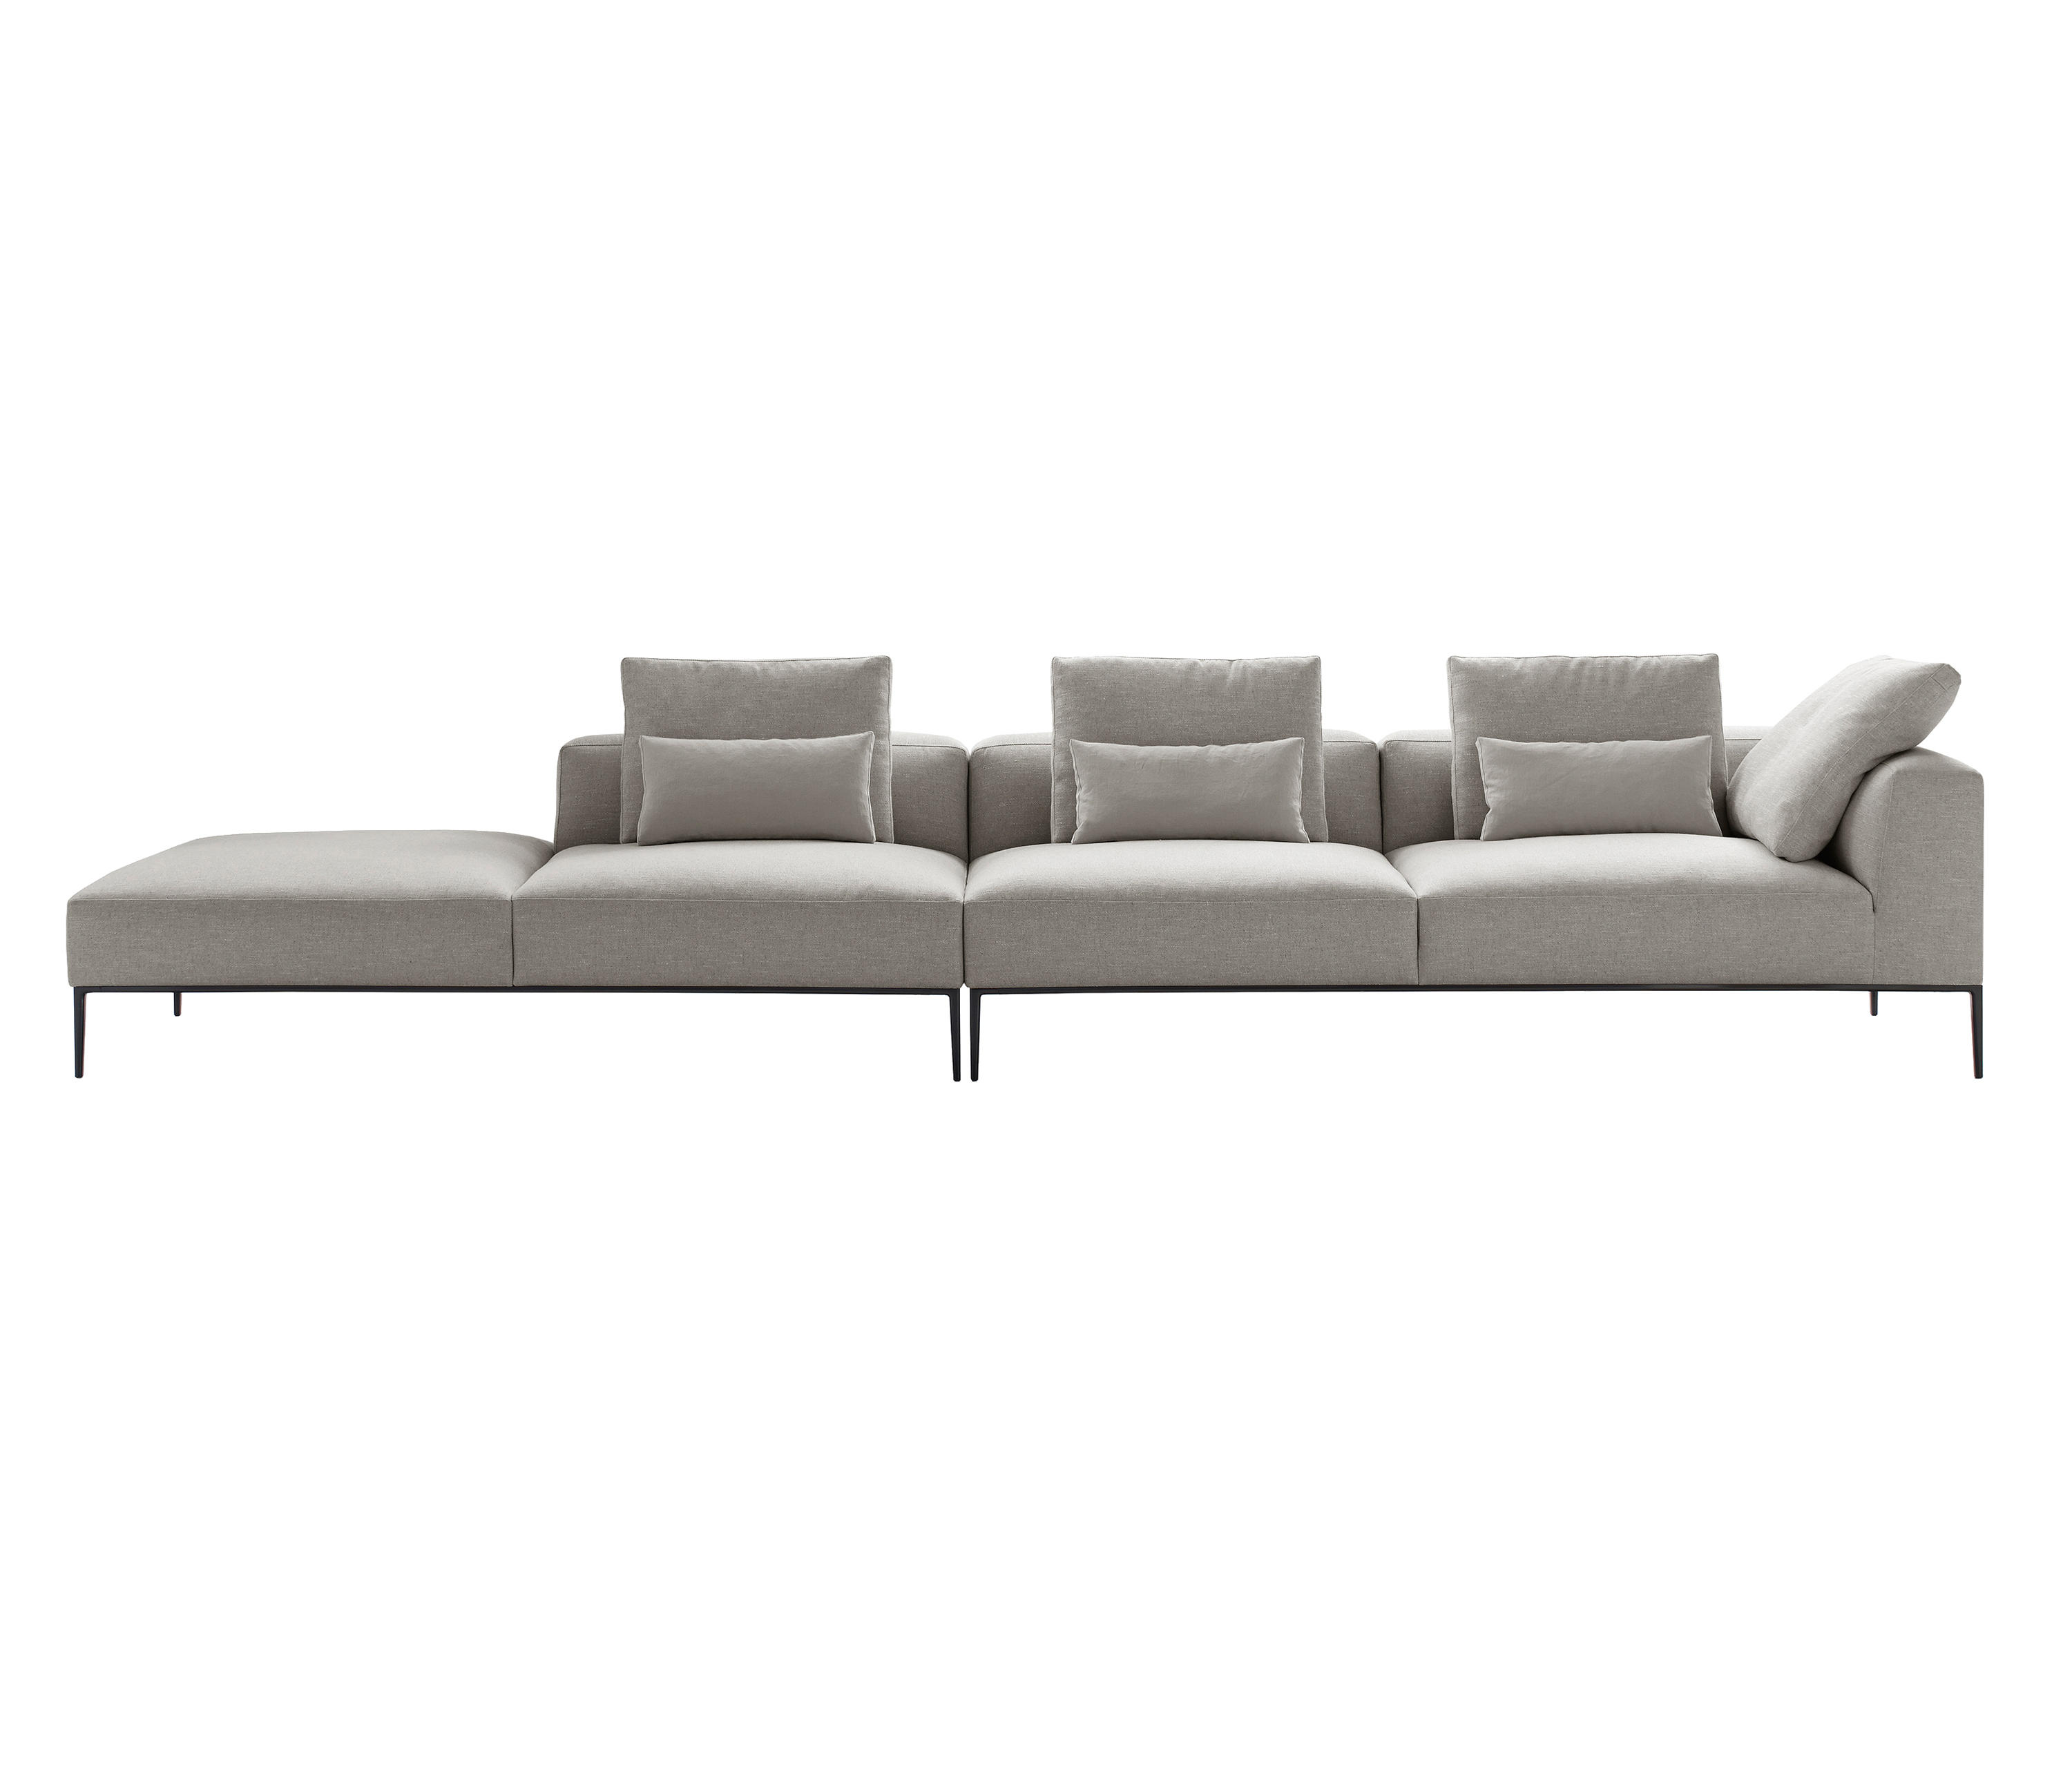 Michel effe sofas from b b italia architonic for B b italia novedrate